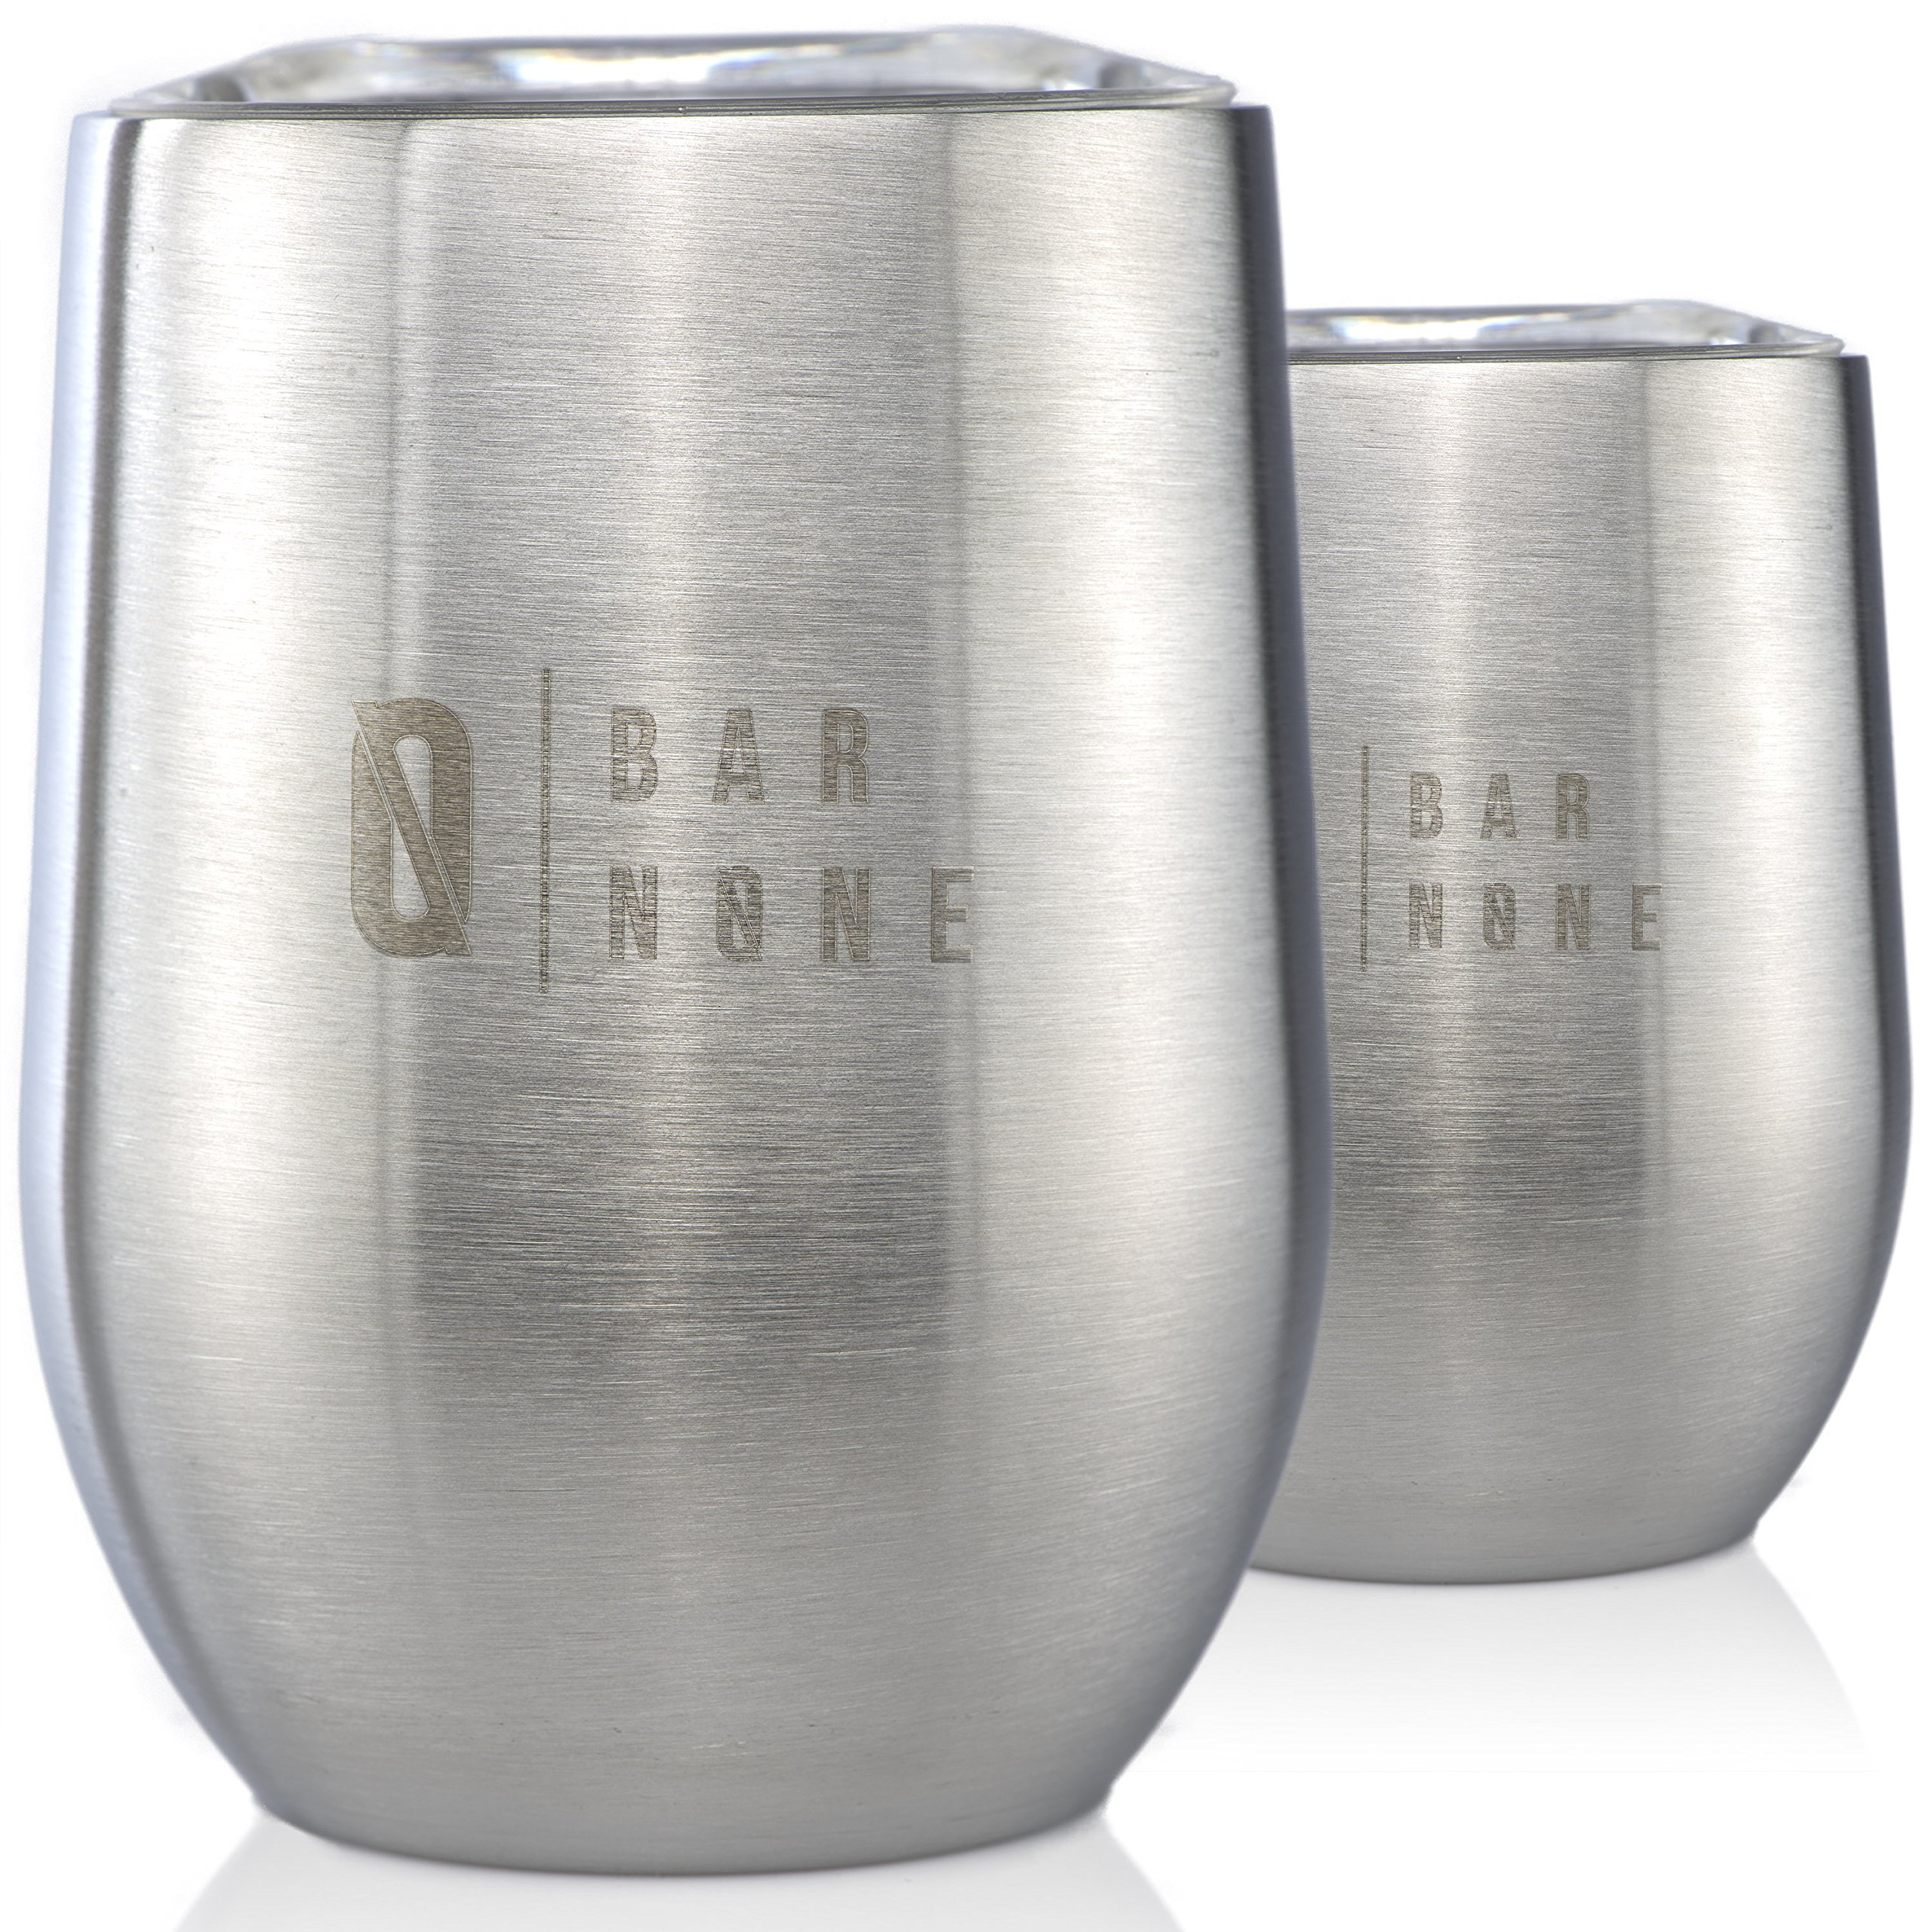 Bar None Wumbler 12 Oz Set of 2 - Exquisite Quality Stainless Steel Wine Glasses Tumbler Vacuum Insulated Double-Walled Stainless Steel Tumblers Shatterproof Stemless Wine Cups Mugs